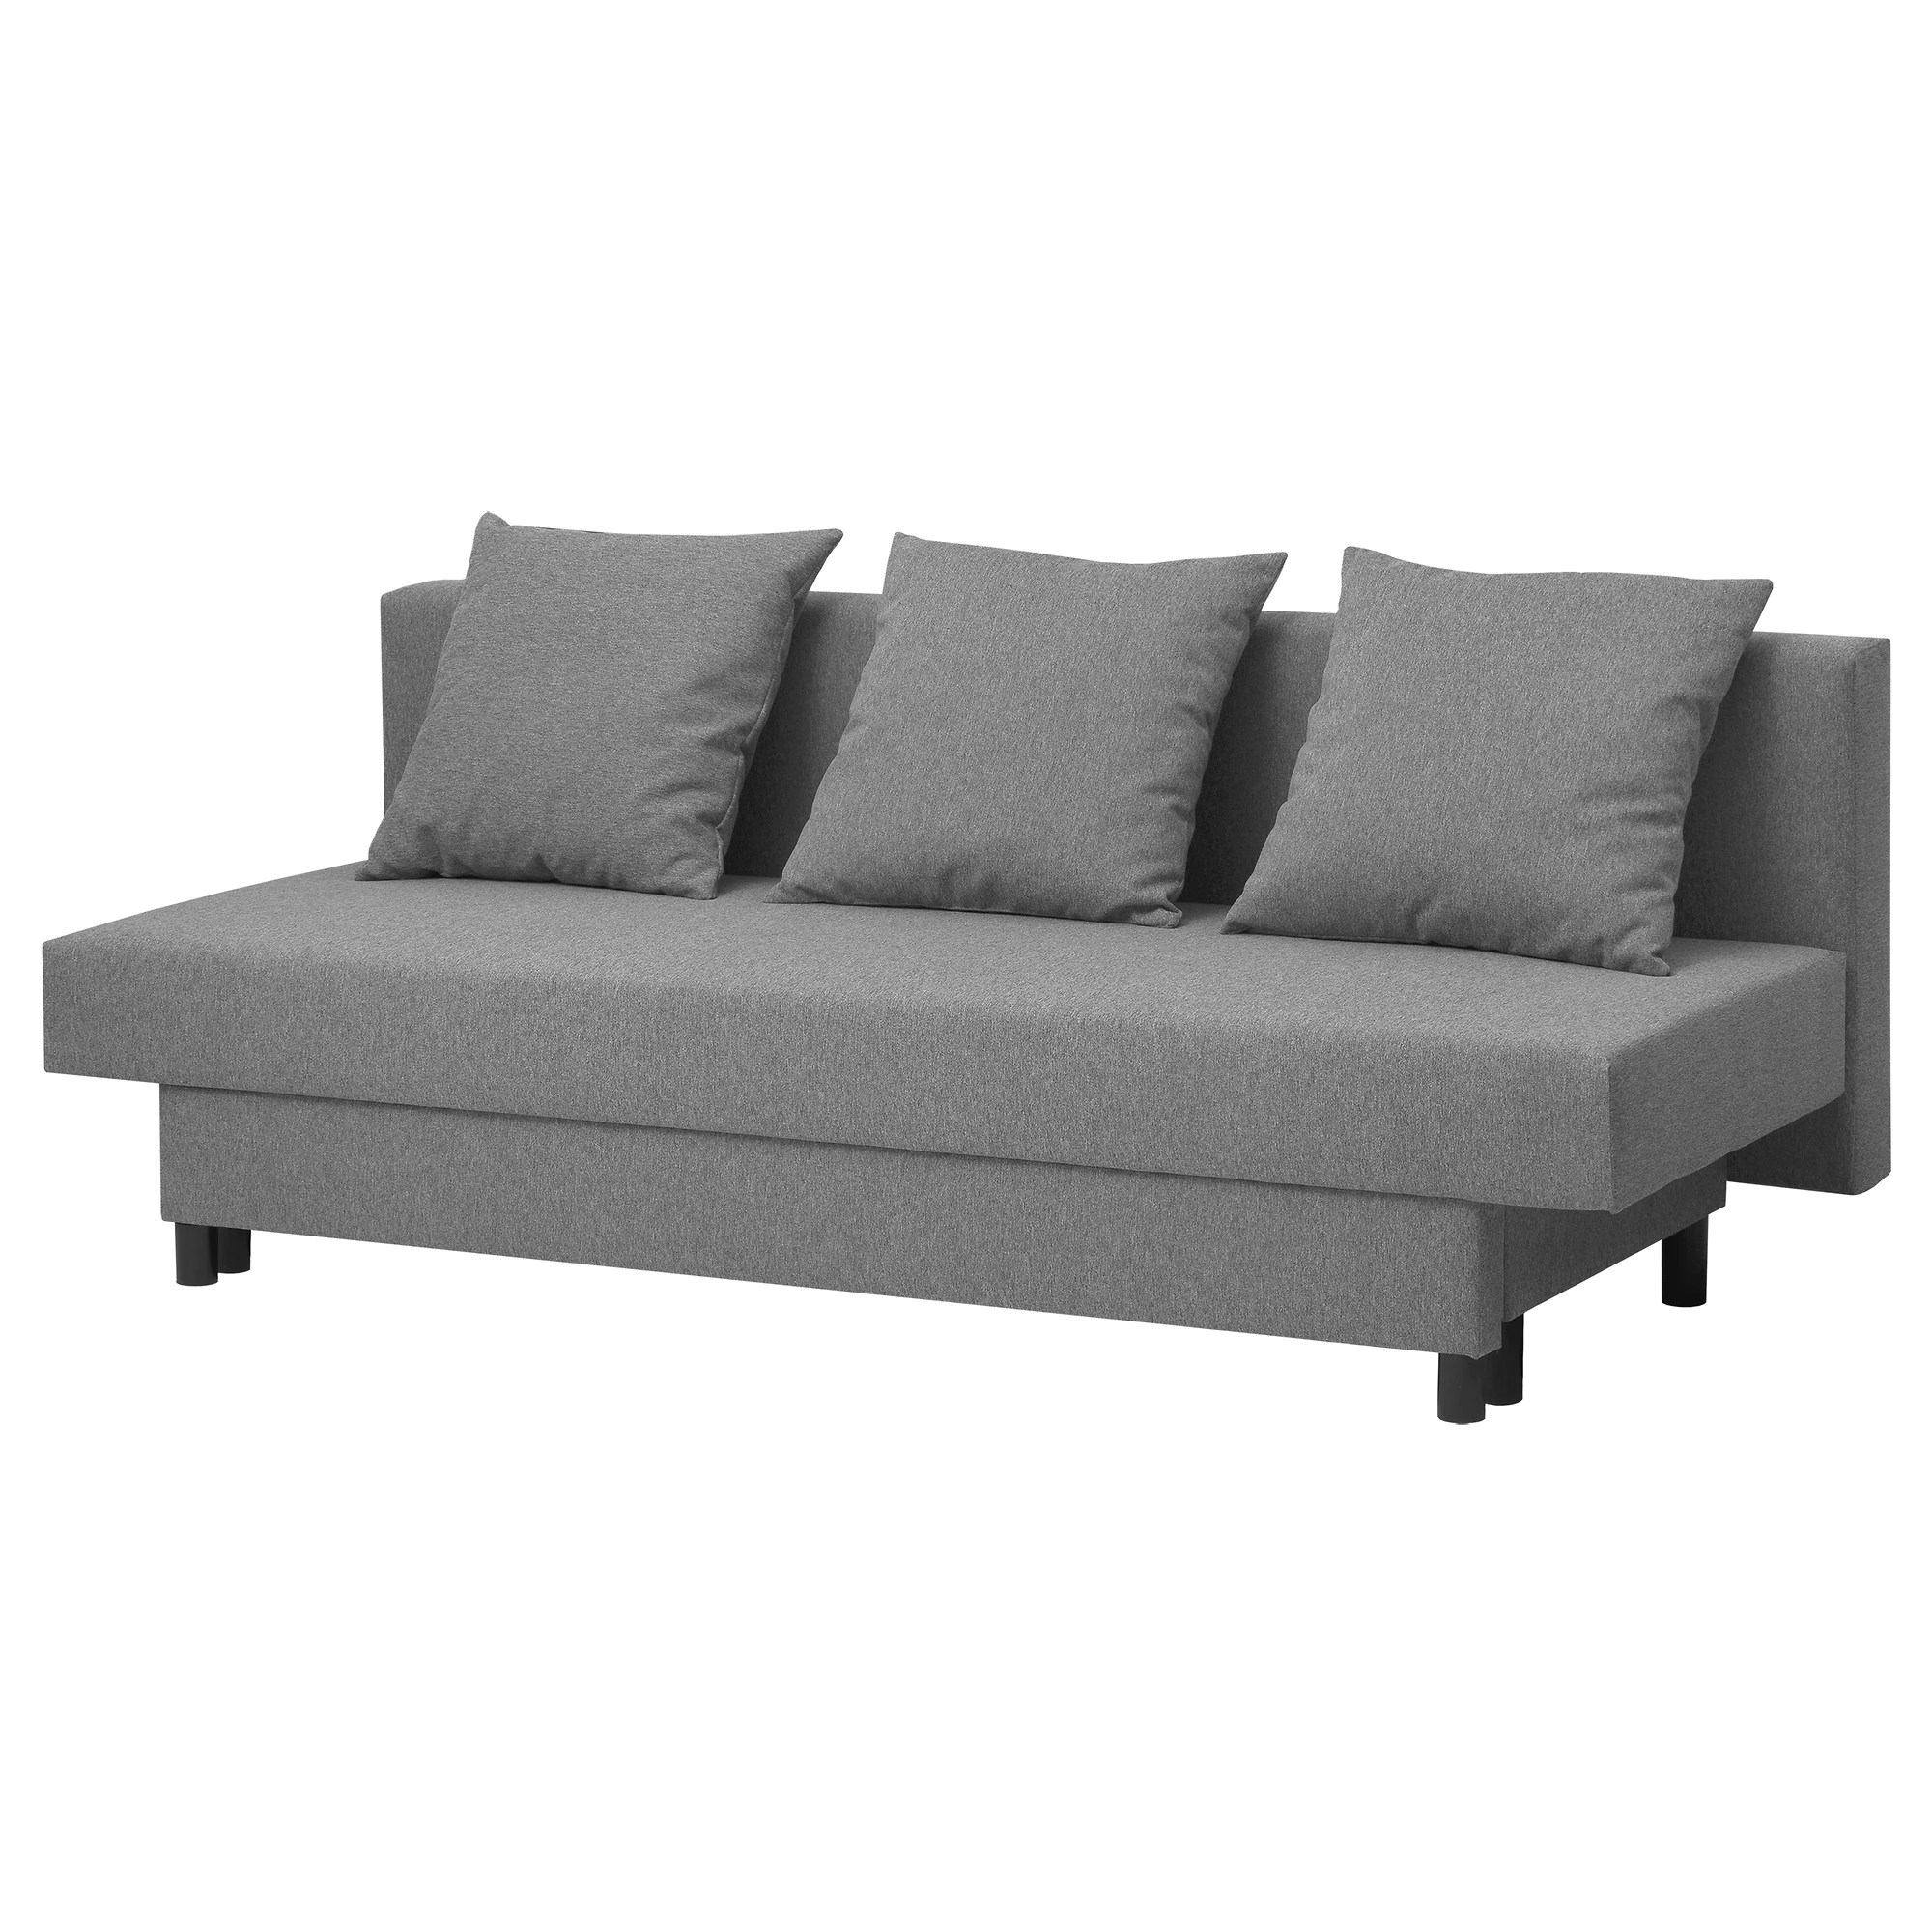 Bettsofas Kinder 3er Bettsofa Asarum Grau